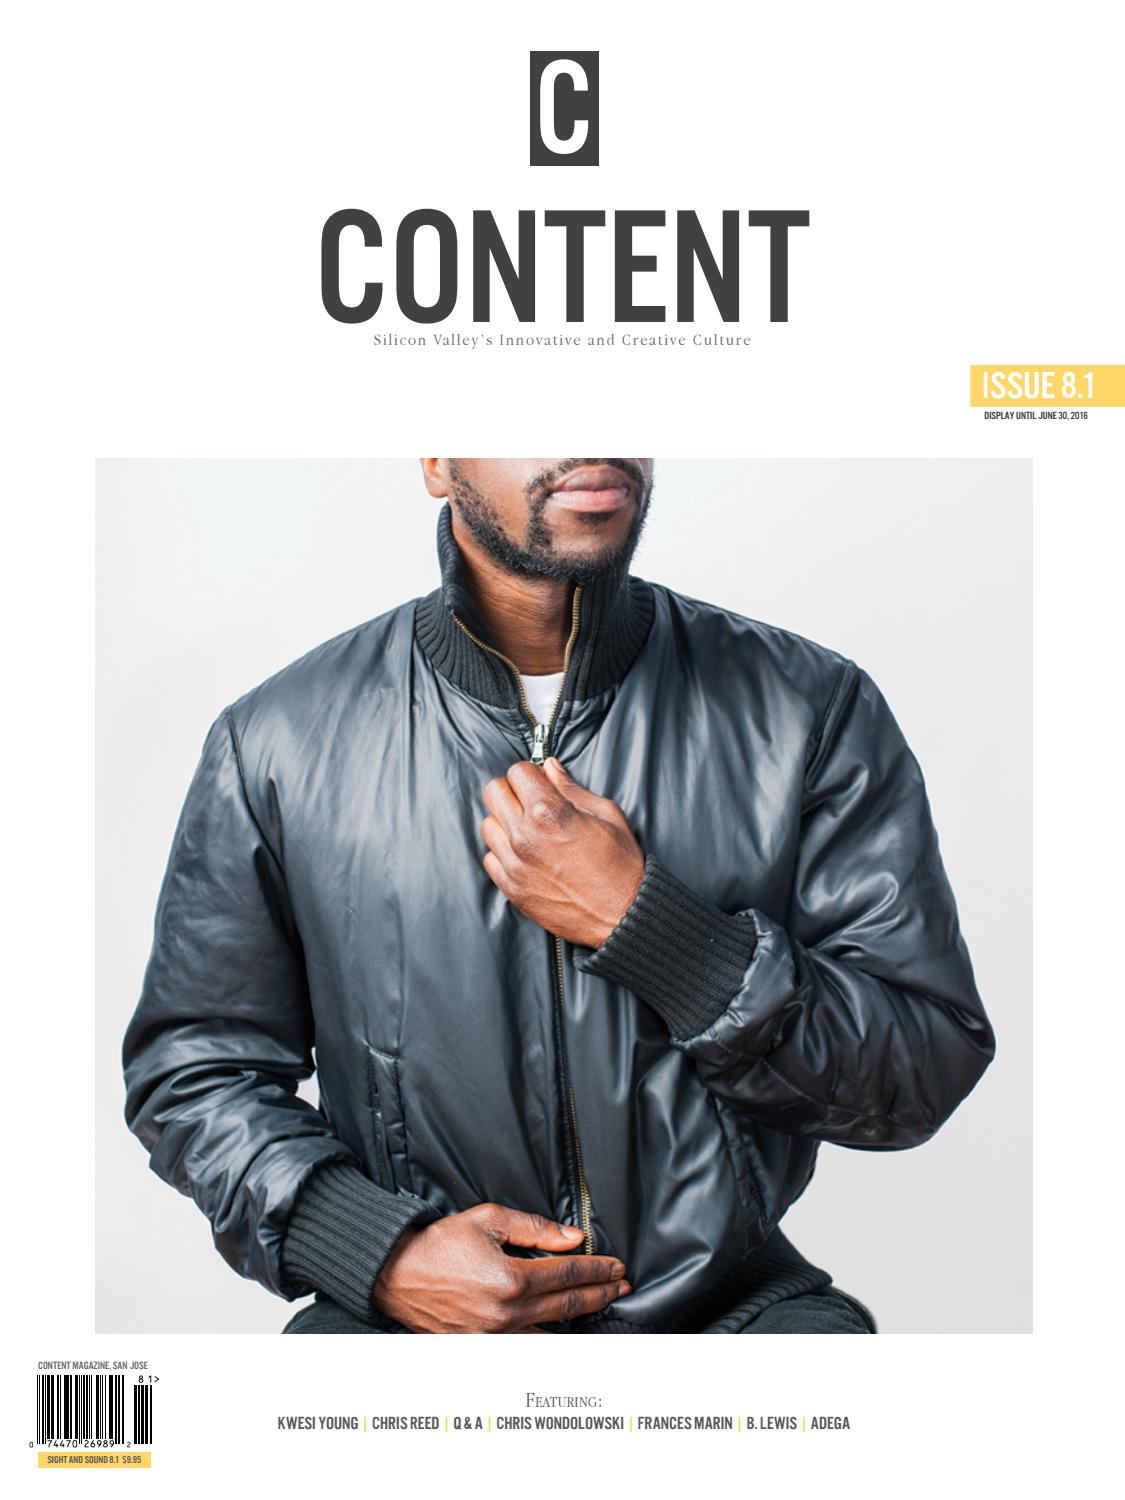 a40b74610f2e Sight and Sound 8.1 by Content Magazine - issuu